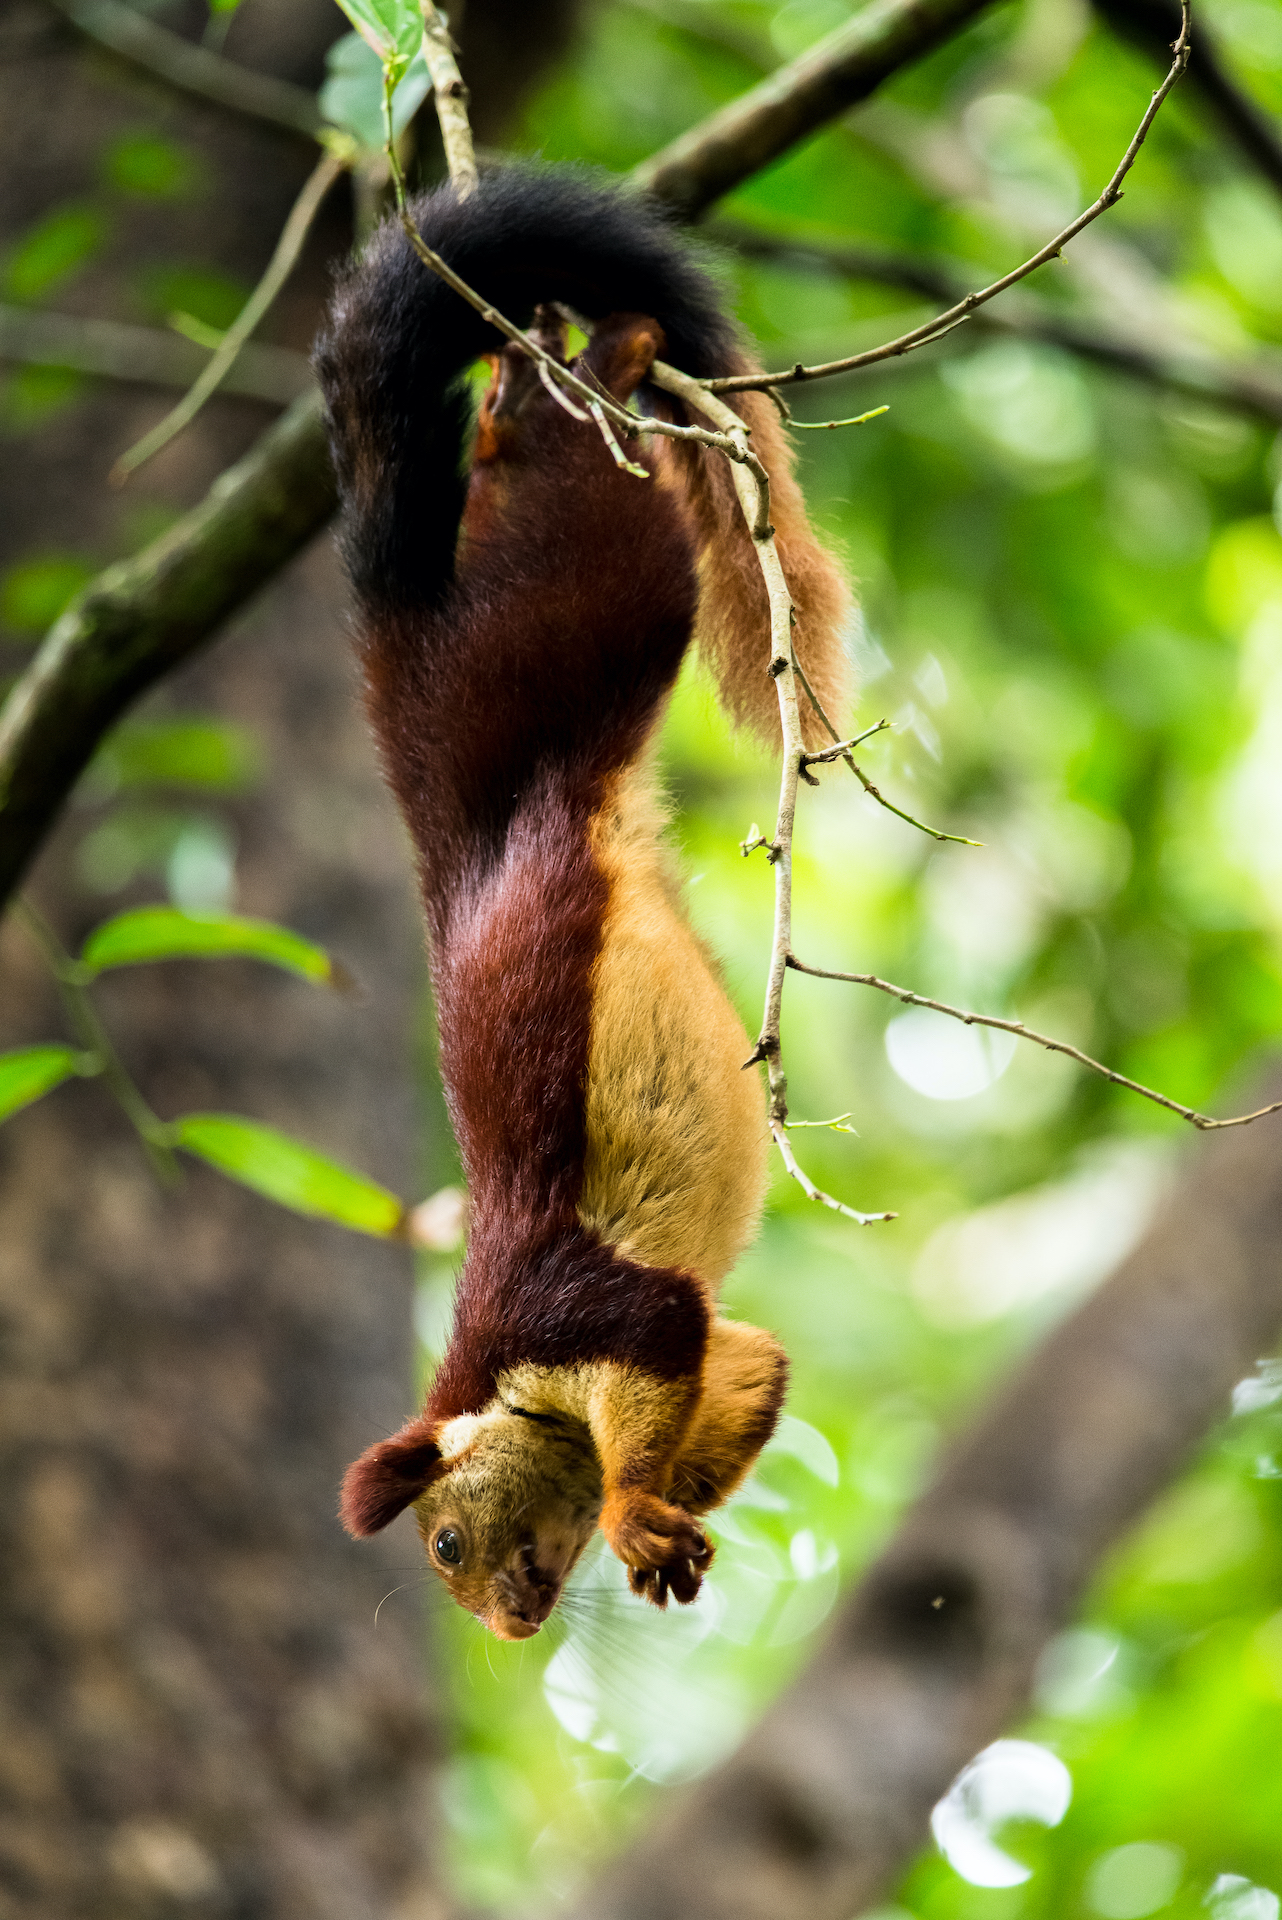 "An acrobatic climber, the Indian giant squirrel will often hang by its hindlegs and use its tail for balance while feeding. Though these squirrels are naturally shy and wary, they can become habituated to humans and take food offered by them. ""Indian giant squirrels can be seen taking food from the hands of pilgrims trekking up the forest trail to the Tirumala temple in Andhra Pradesh. This has also been reported from other locations,"" says Rajamani.  Photo: Manojiritty, CC BY-SA 4.0"